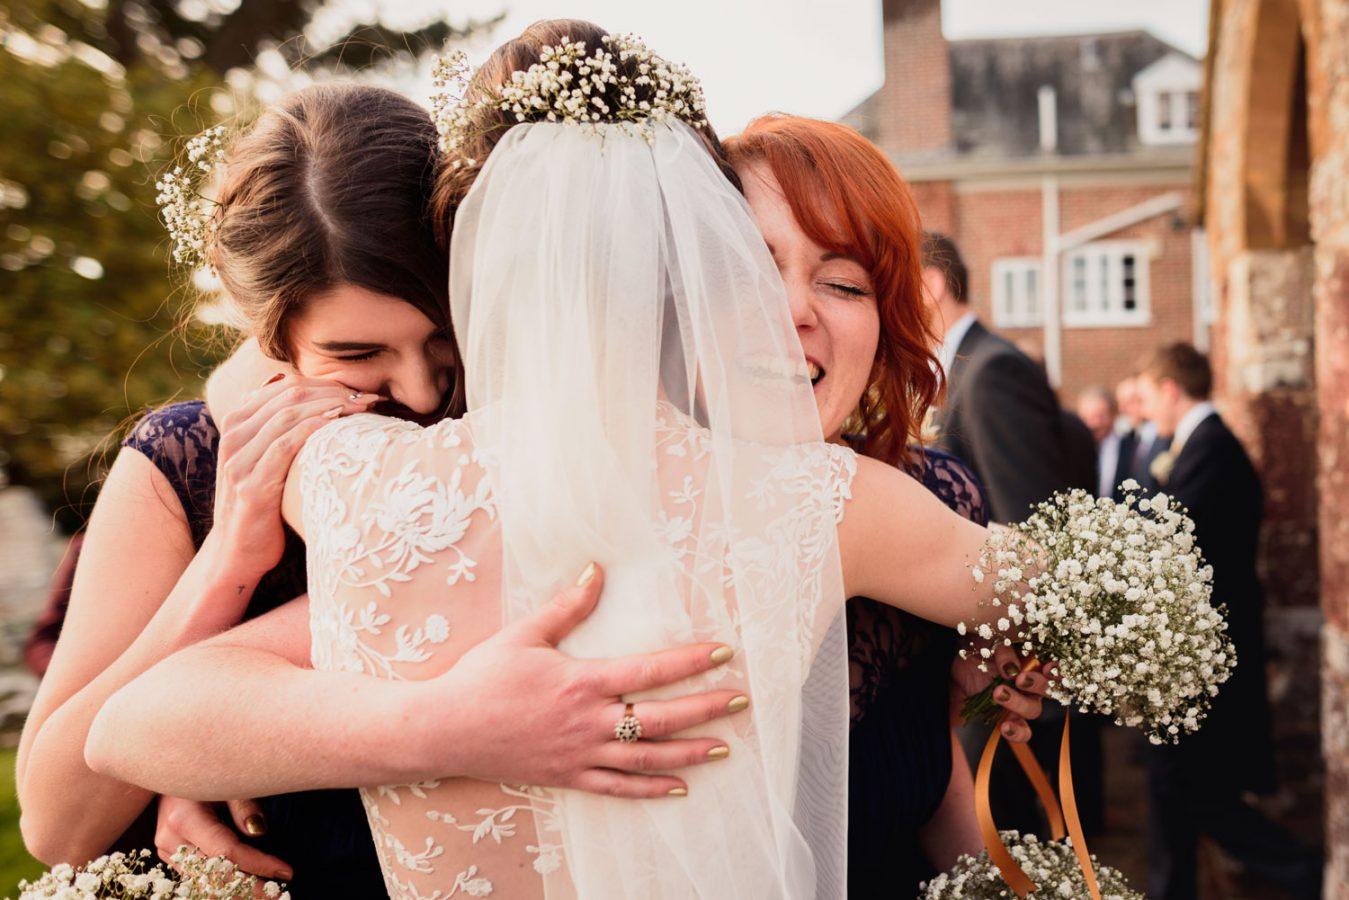 Friends hugging the bride